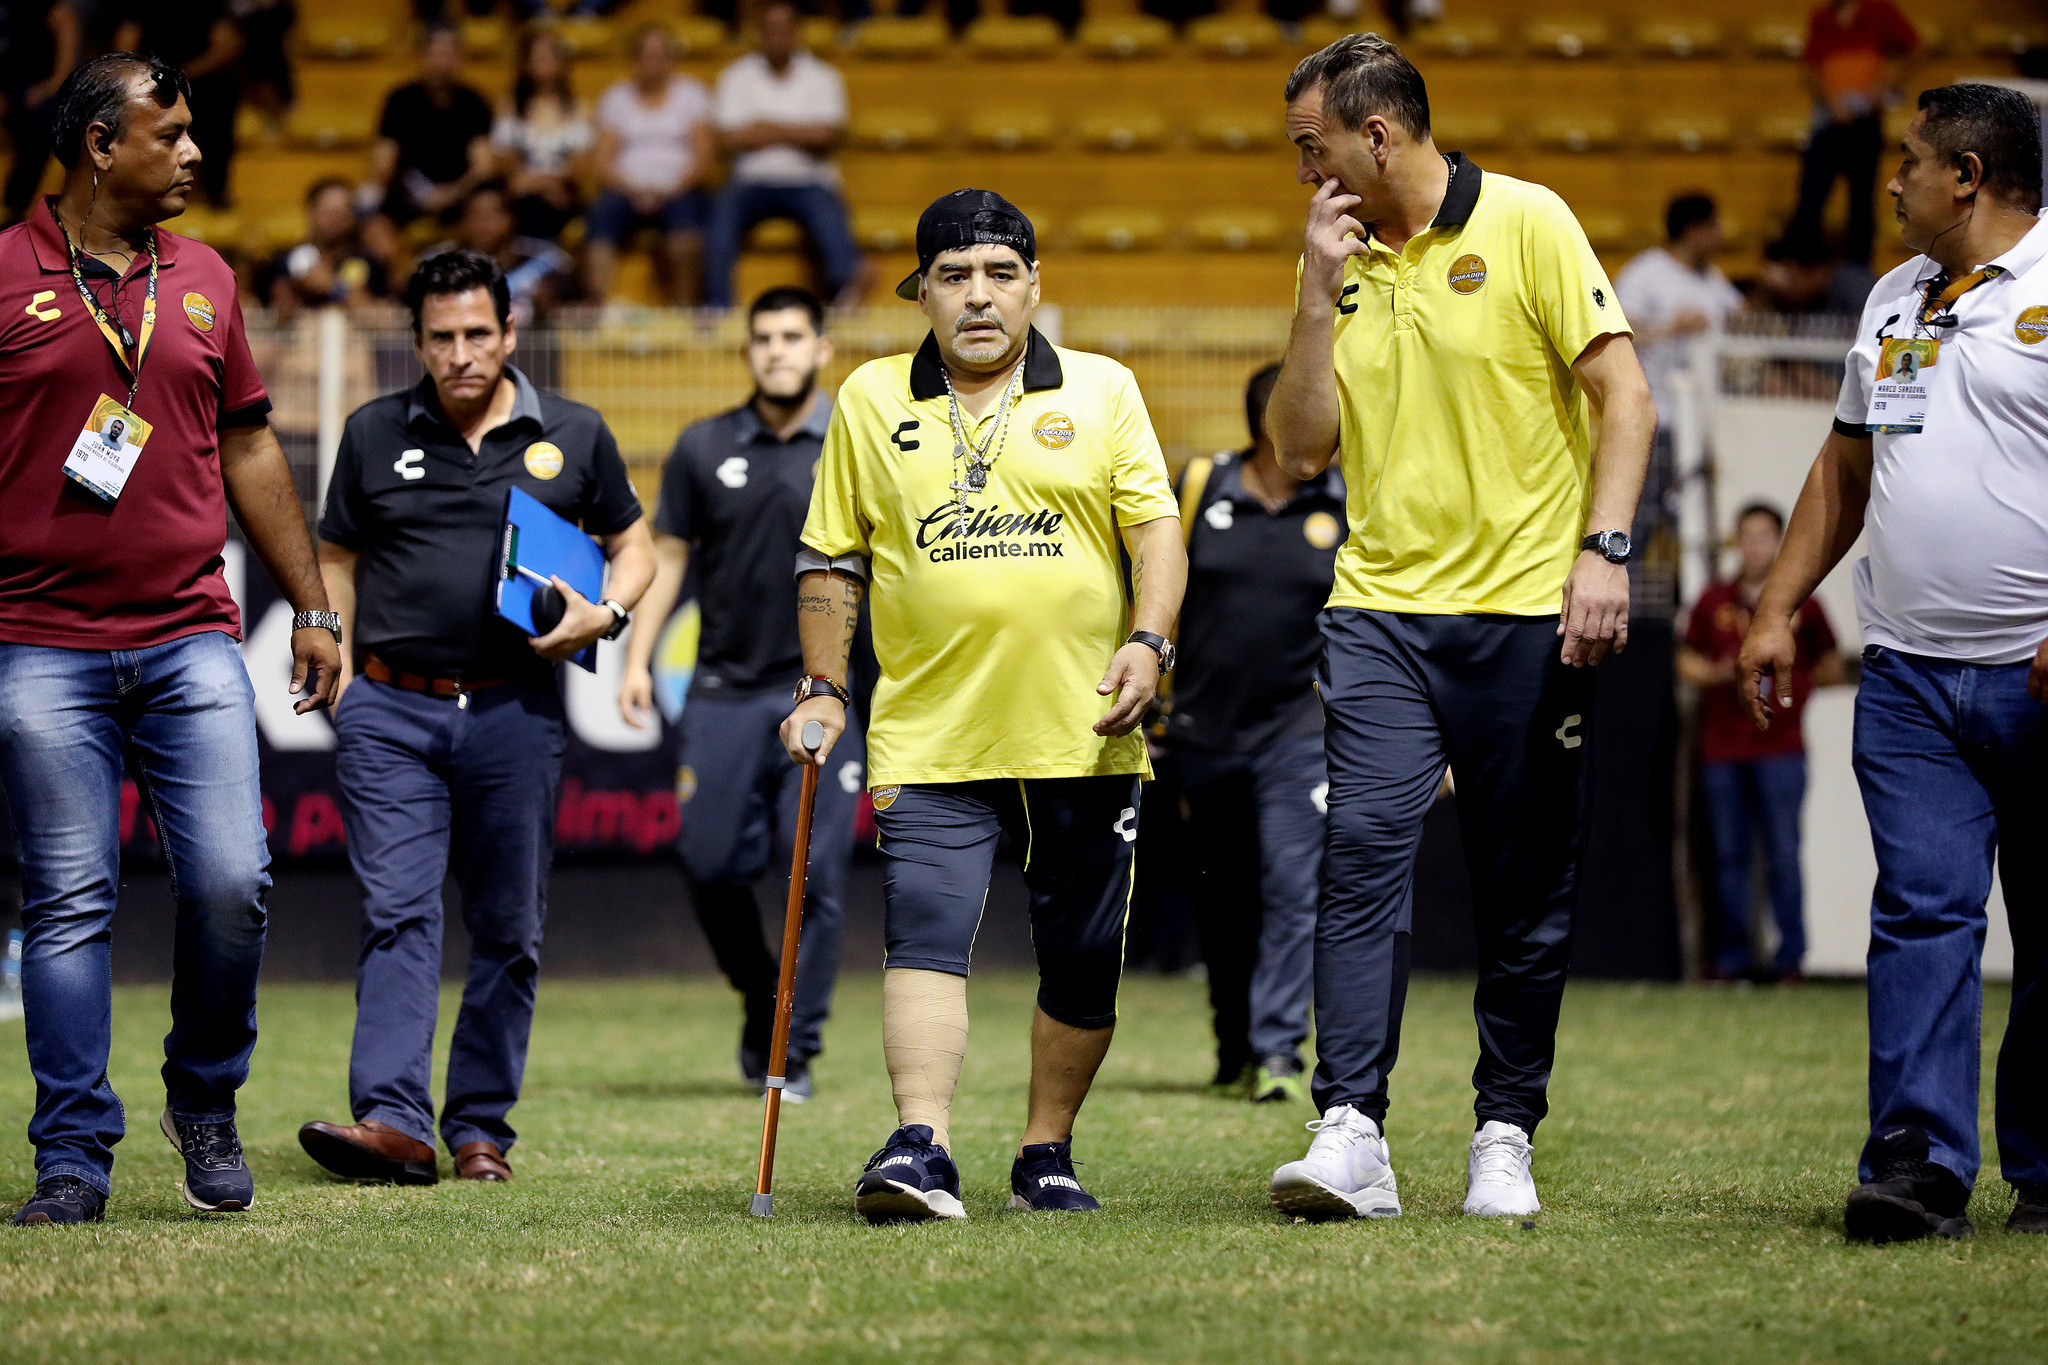 CULIACÁN, SINALOA — SATURDAY, OCTOBER 27, 2018: Diego Maradona, center, coach of Dorados of Sinaloa